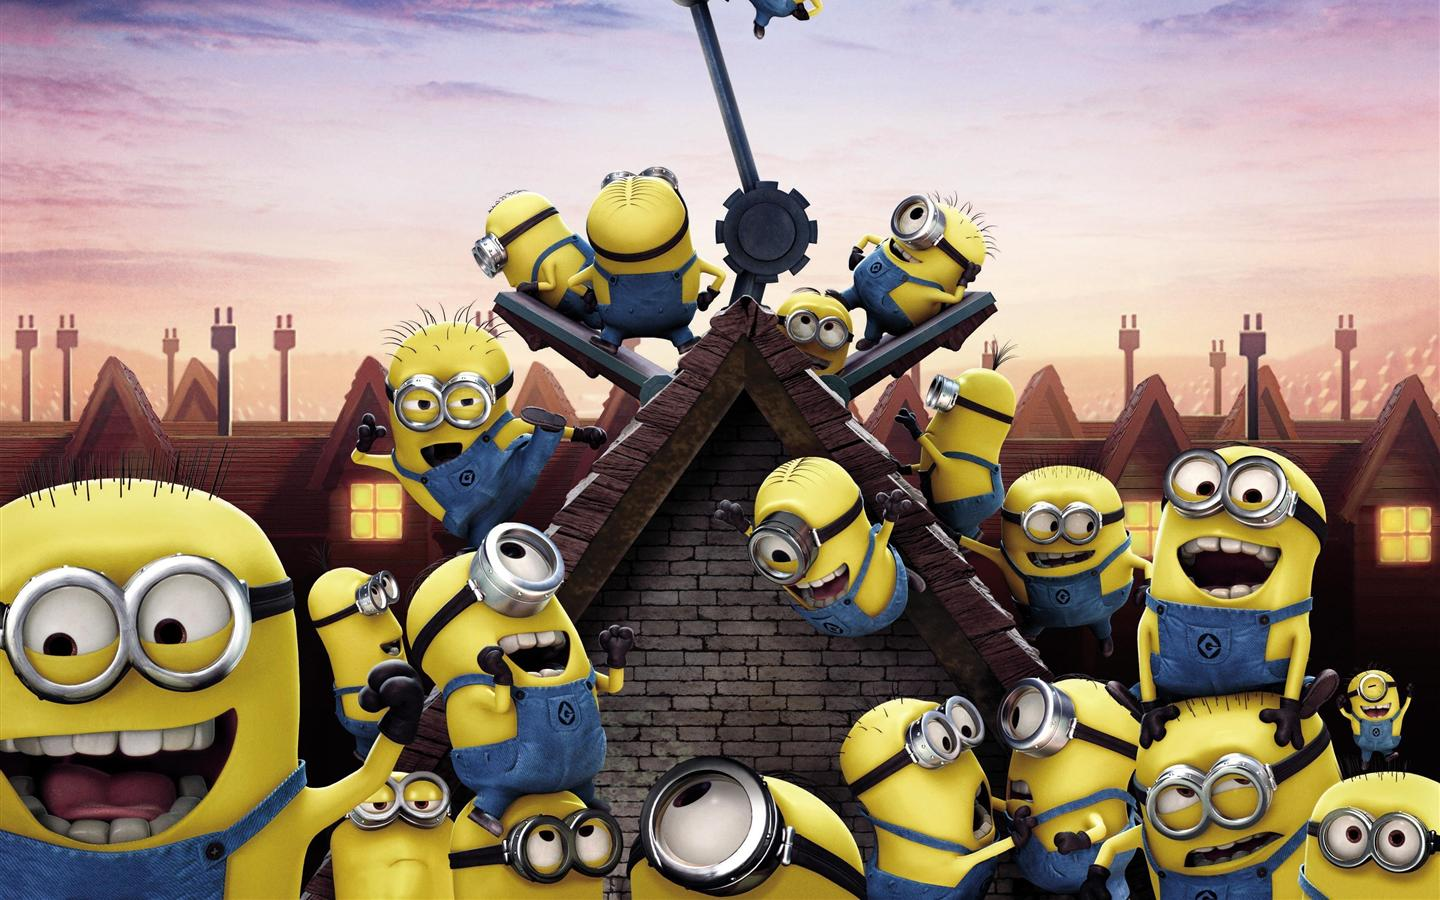 Shut-Up-And-Love-Minions-Pinterest-wallpaper-wpc5808738